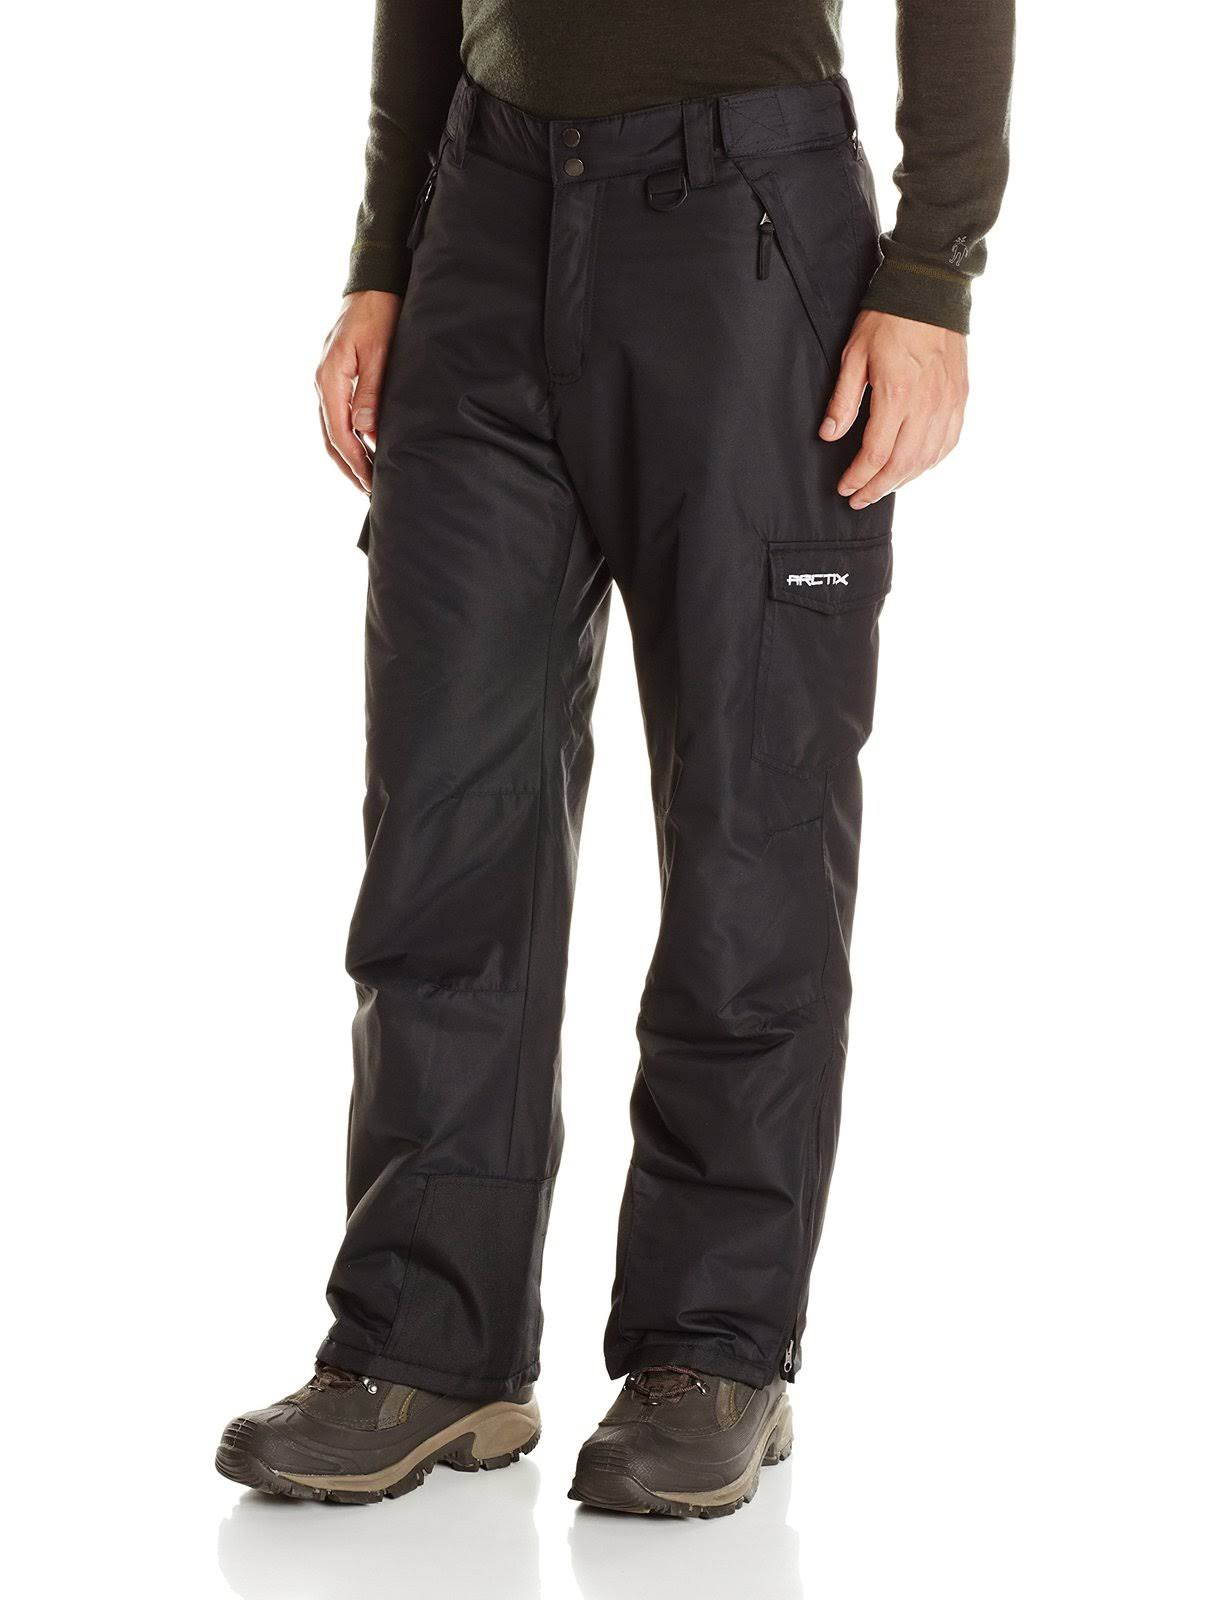 Arctix Men's Classic Cargo Snow Pants - Black, Medium